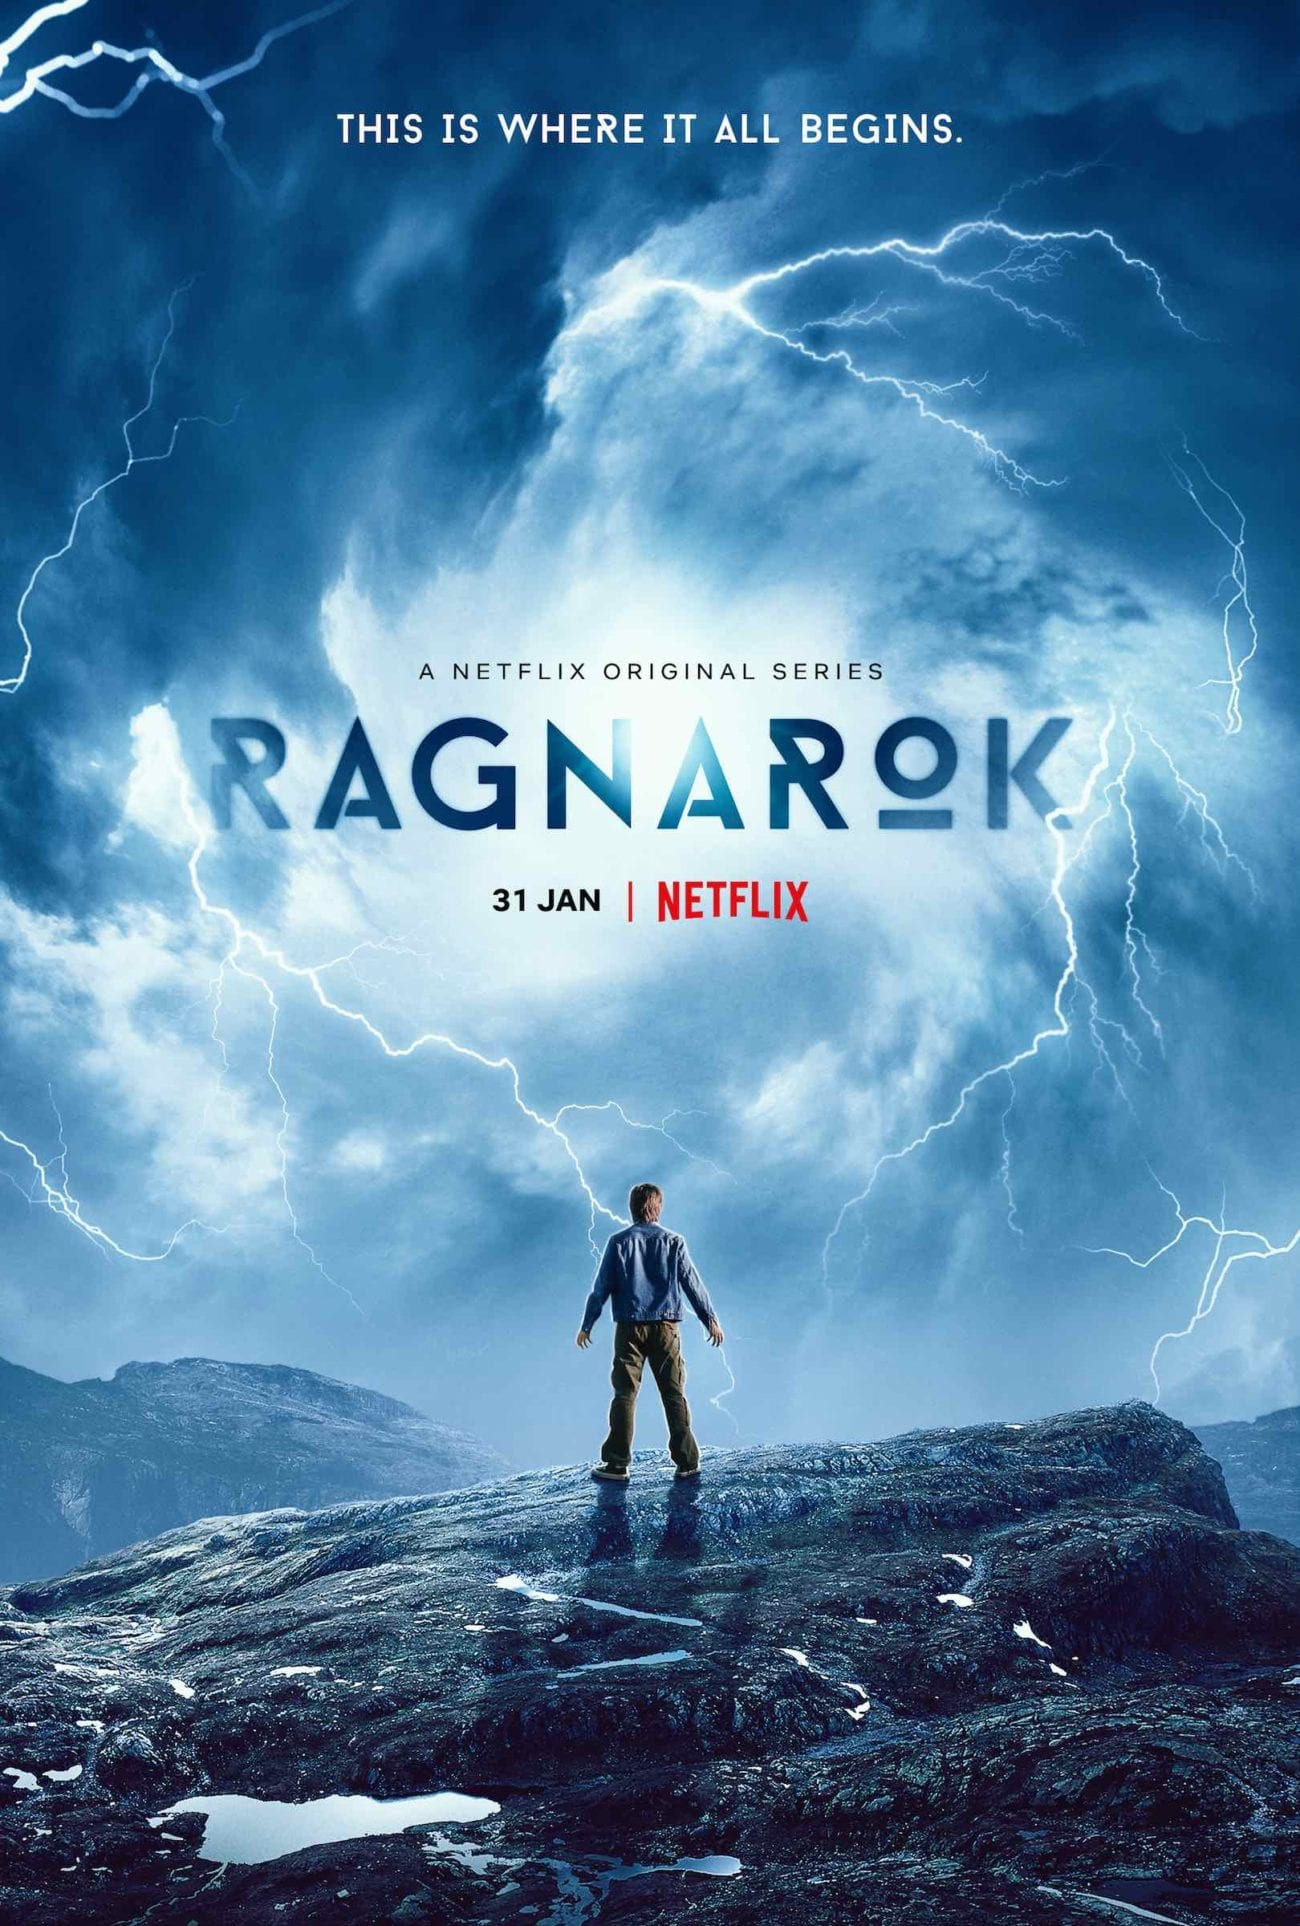 The Netflix series 'Ragnarok' brings a new approach to a mythology story of a battle in the Norwegian sky. Here's why you need to watch.